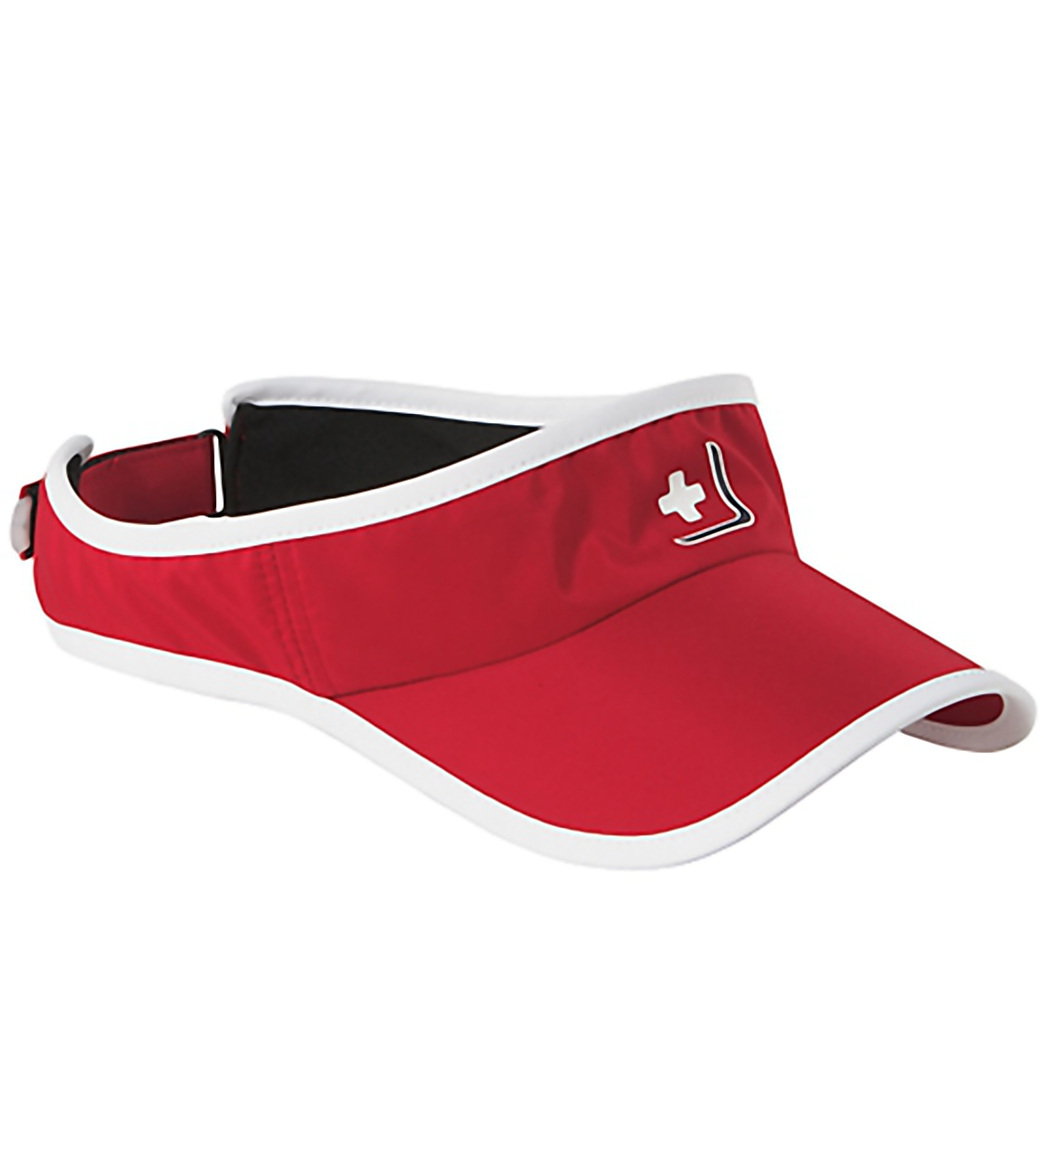 Nike Swim Life Lifeguard Visor at SwimOutlet.com 4573481150b